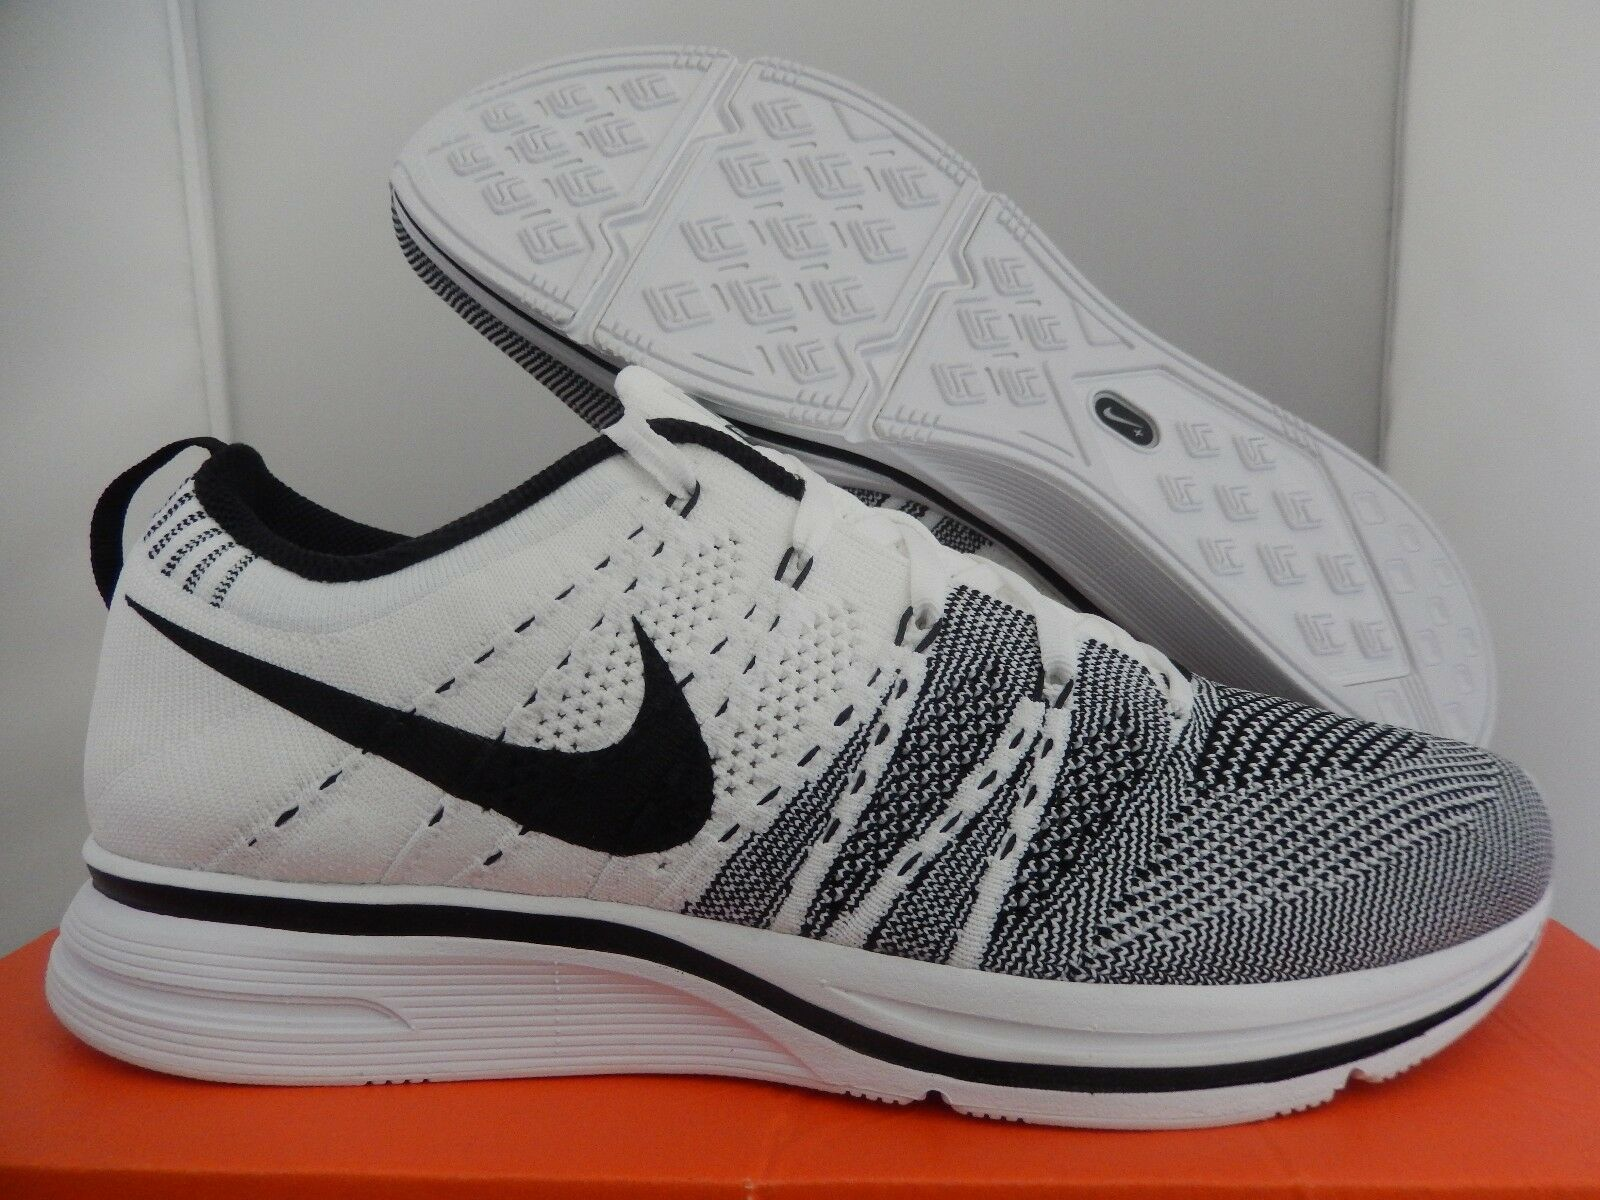 6b16aefb3a41 Nike Flyknit Trainer White-black Sz 7.5 RARE 532984-100 for sale ...